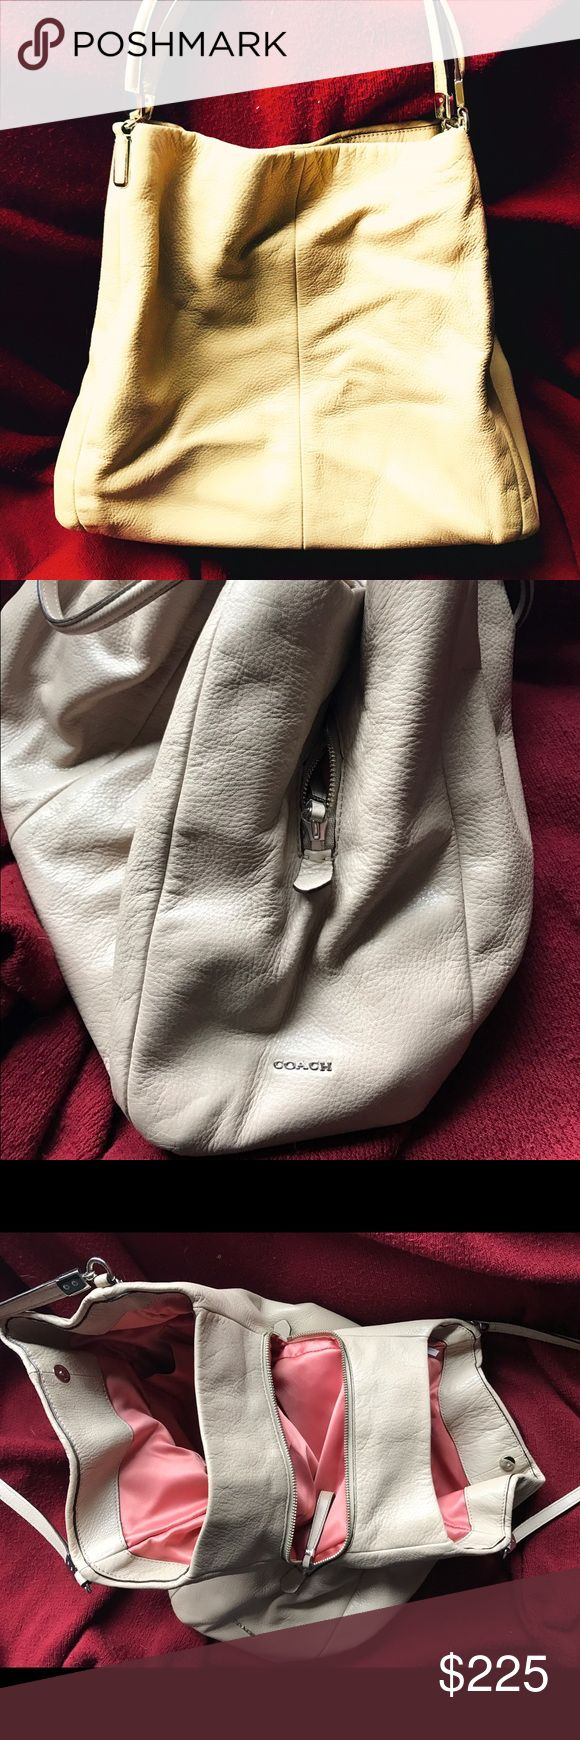 Ladies coach shoulder bag Ladies nude colored shoulder bag in excellent condition. Has been used, but still has it original tags attached. Coach Bags Shoulder Bags